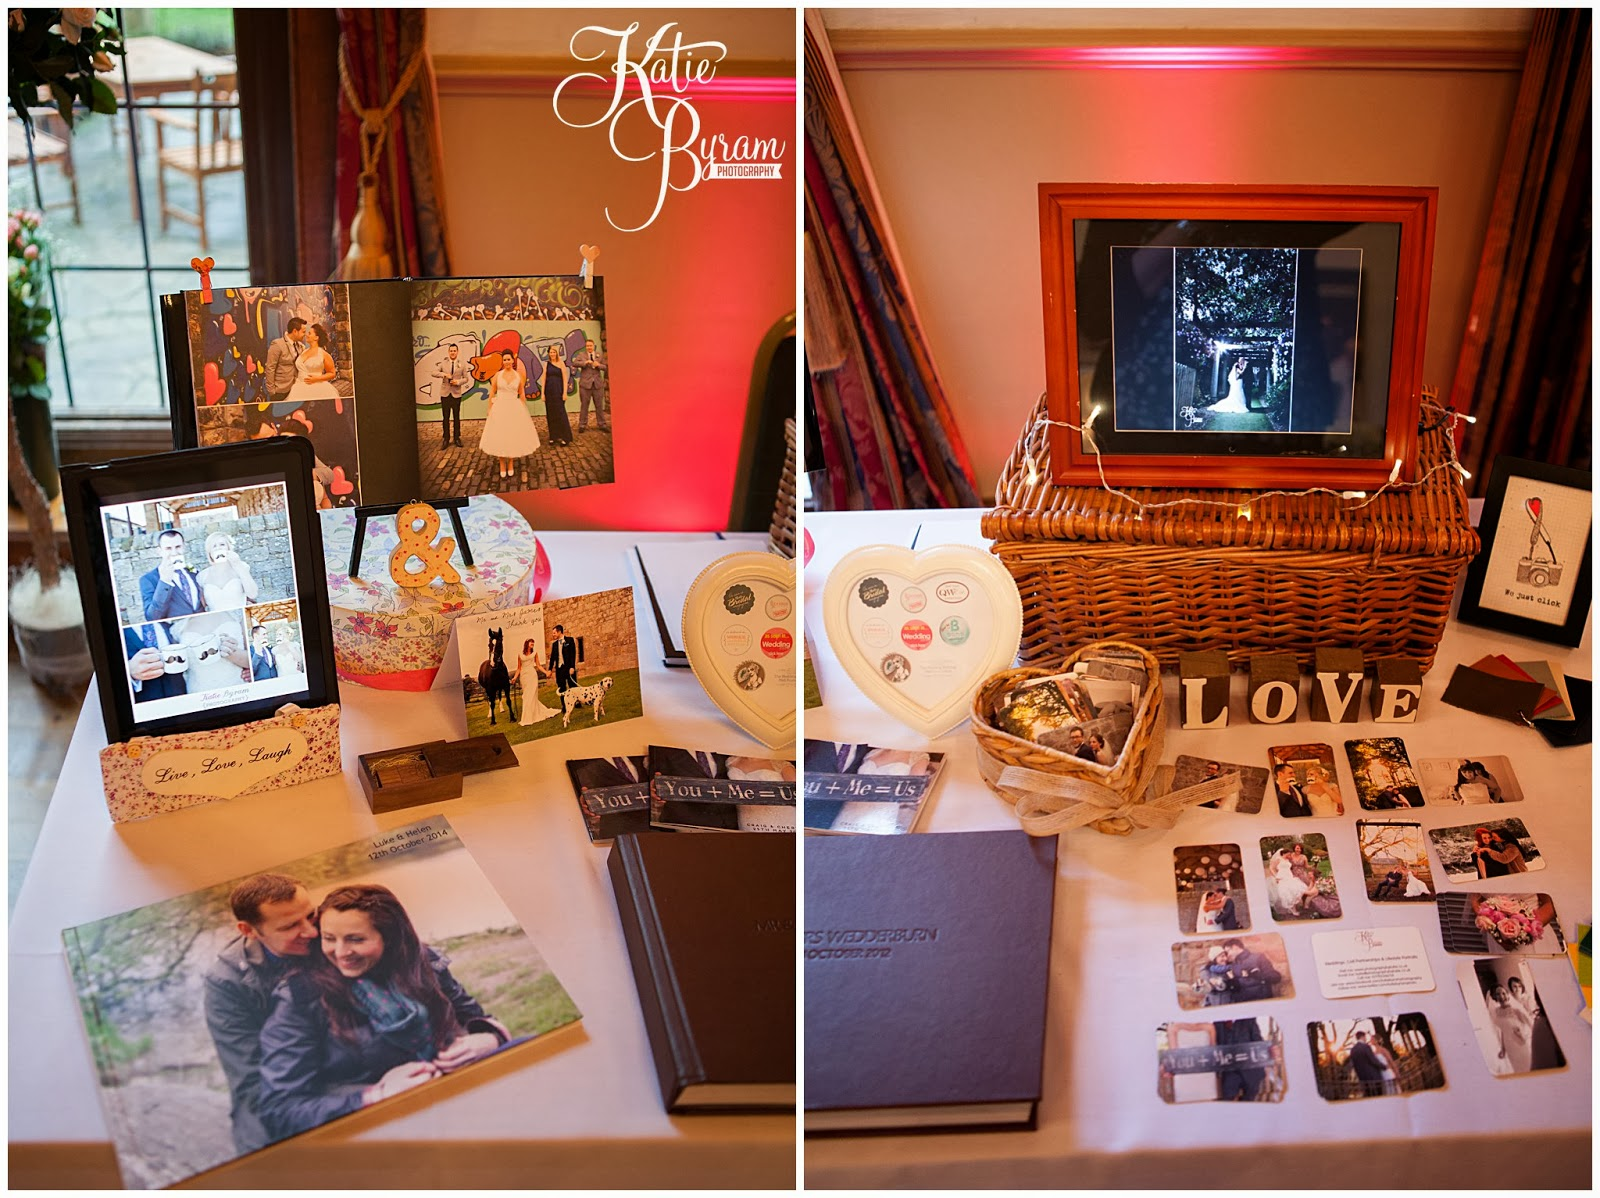 kirkley hall wedding fair, kirkley hall wedding, kirkley hall wedding showcase, katie byram photography, by wendy stationery, floral quarter, mark deeks music, northumberland wedding venue,